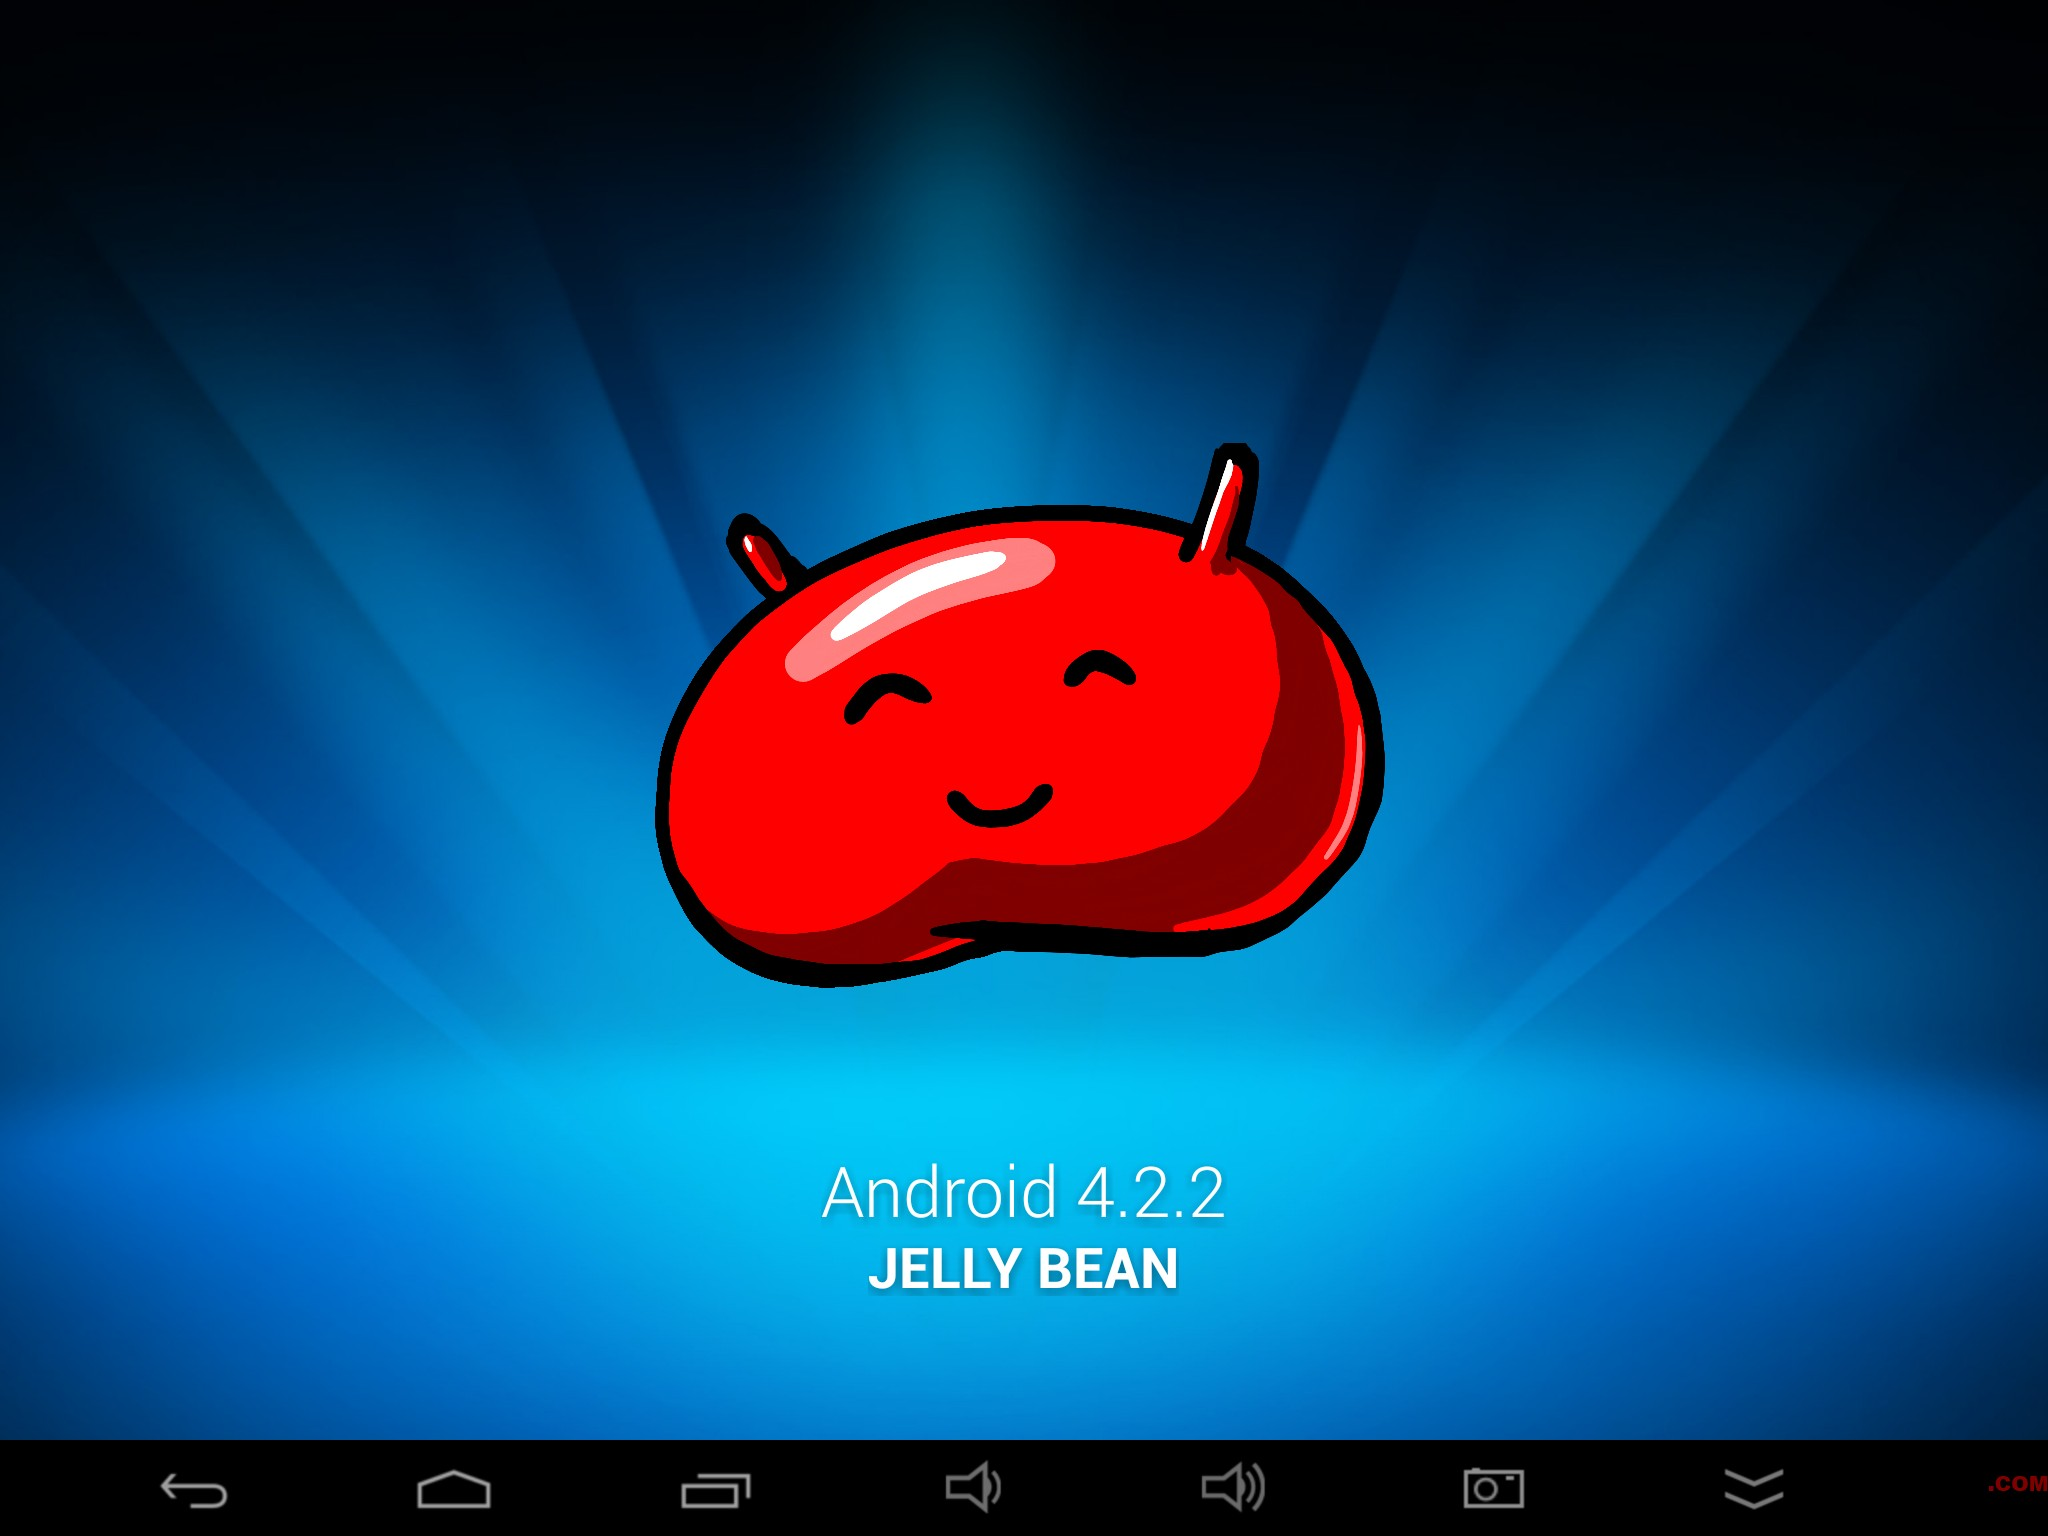 pipo_m6_pro_android422_20140318_about_jellybean.png